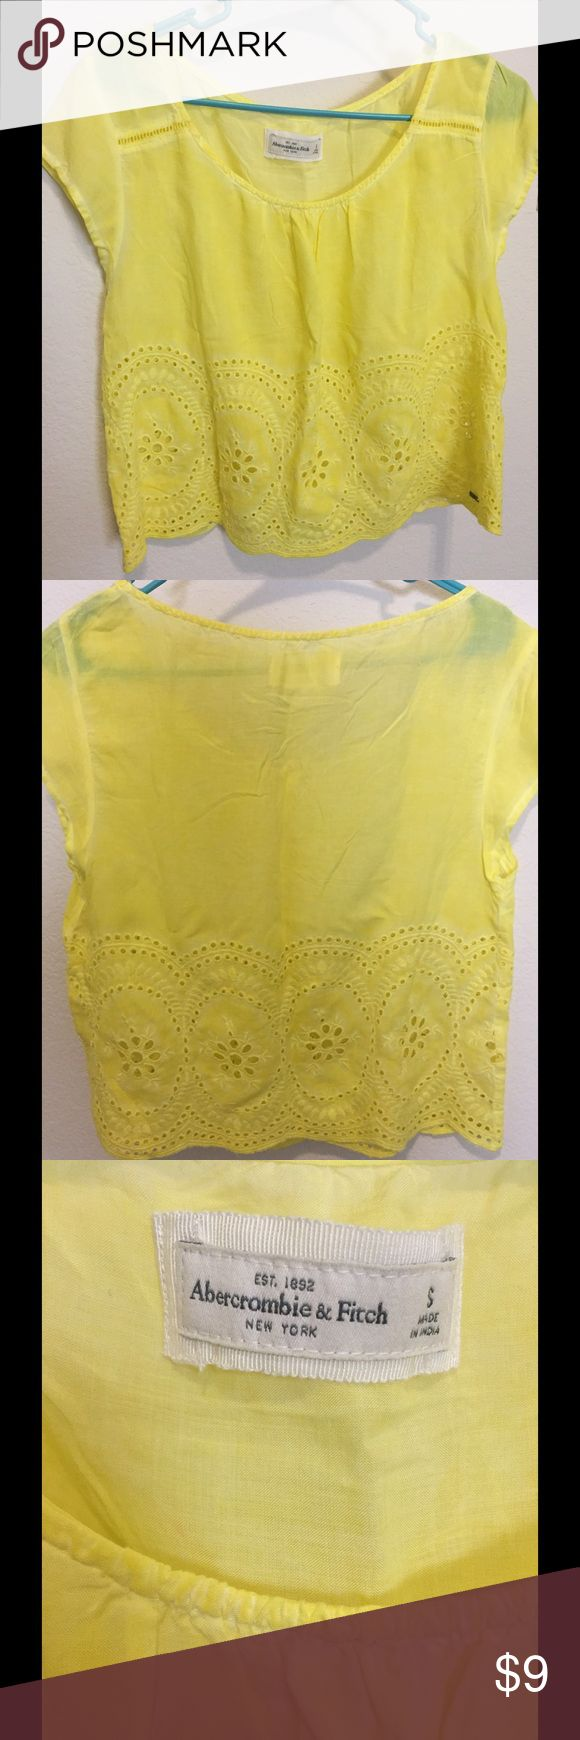 Abercrombie and Fitch Yellow Lace Tee Small Abercrombie and Fitch Lace Top. Has metal emblem on bottom right and Lace bottom. Abercrombie & Fitch Tops Tees - Short Sleeve